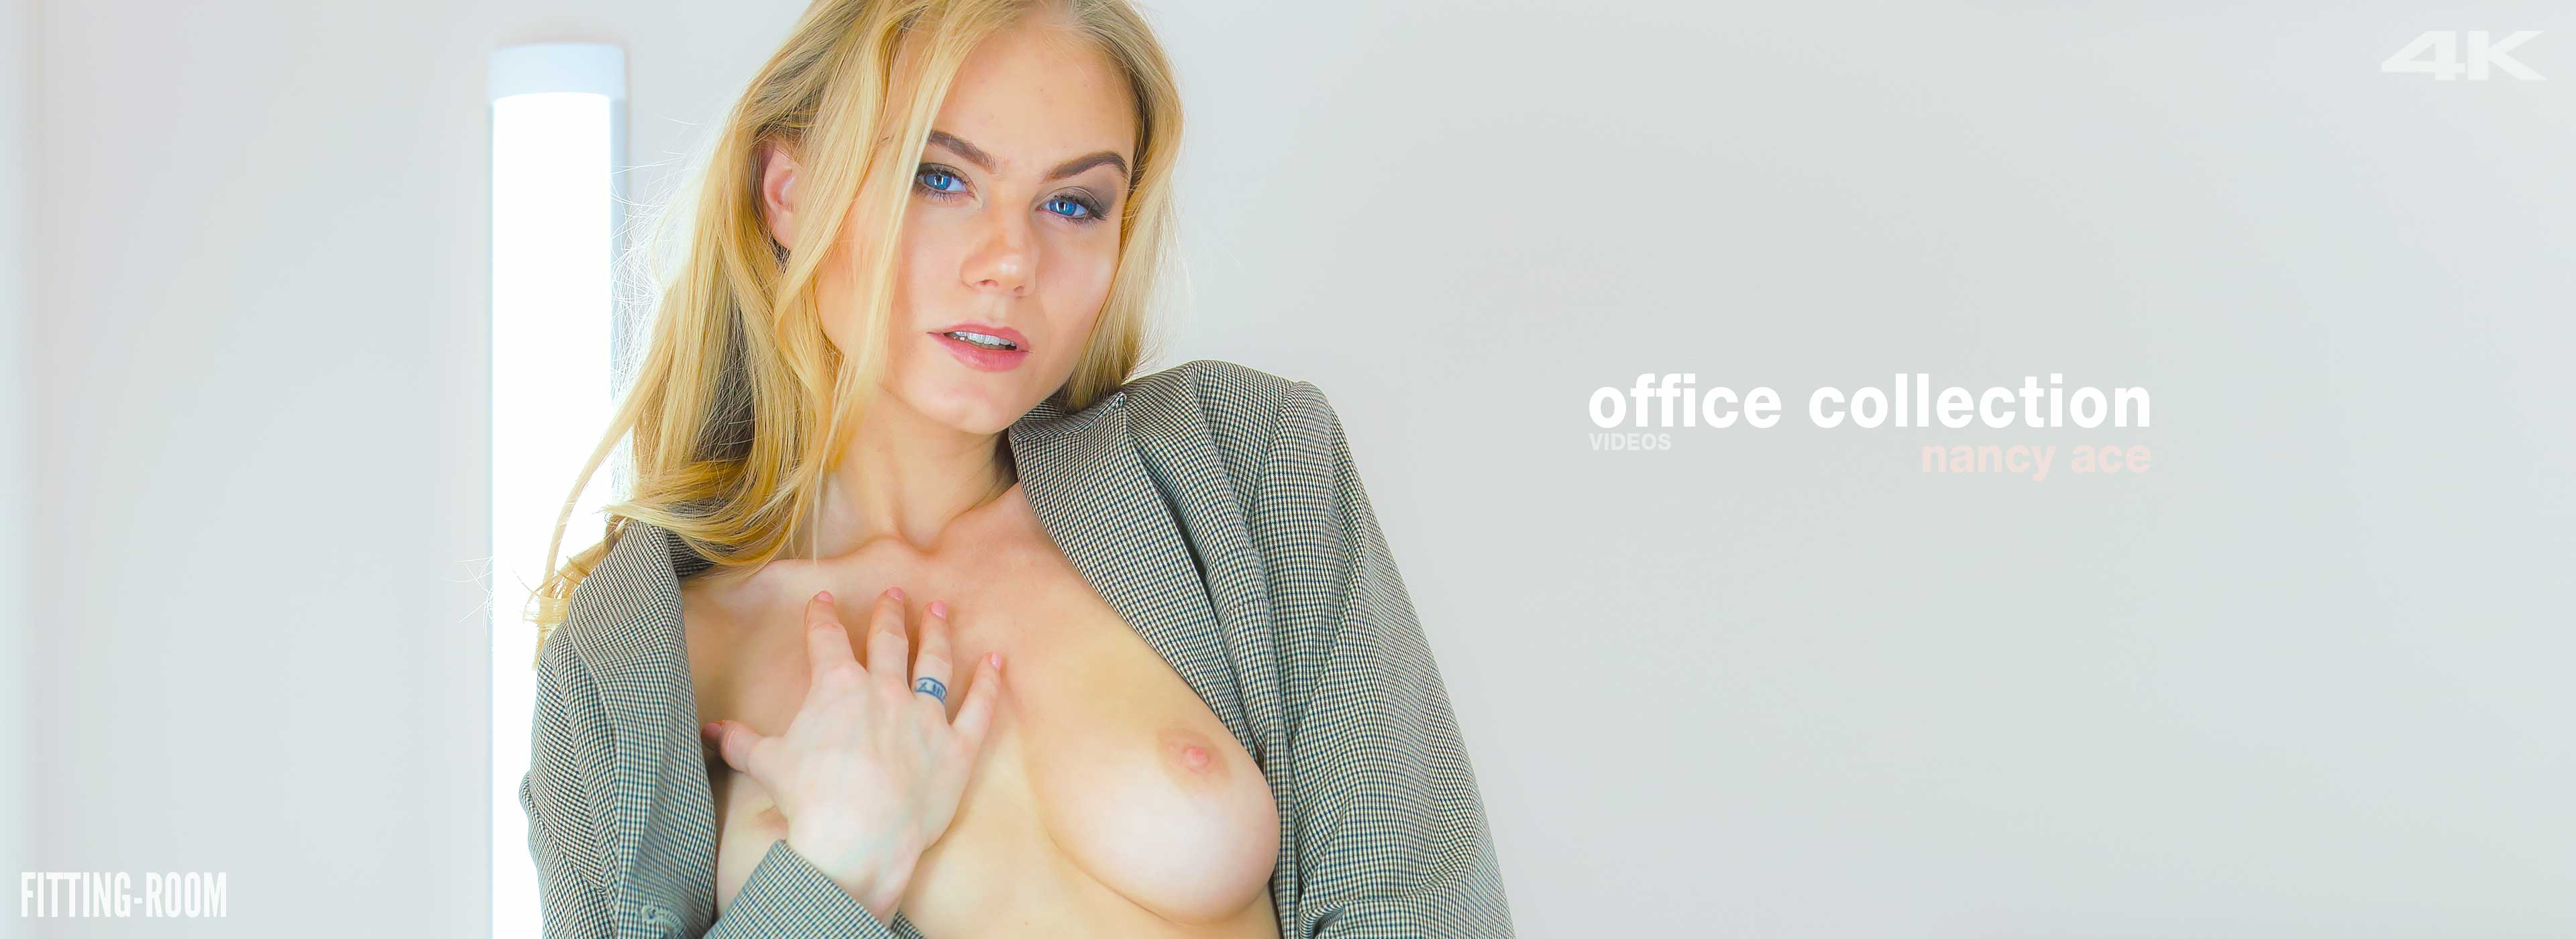 Nancy Ace is on a break from the office and comes in for some alone time with new panties in this lingerie fetish video